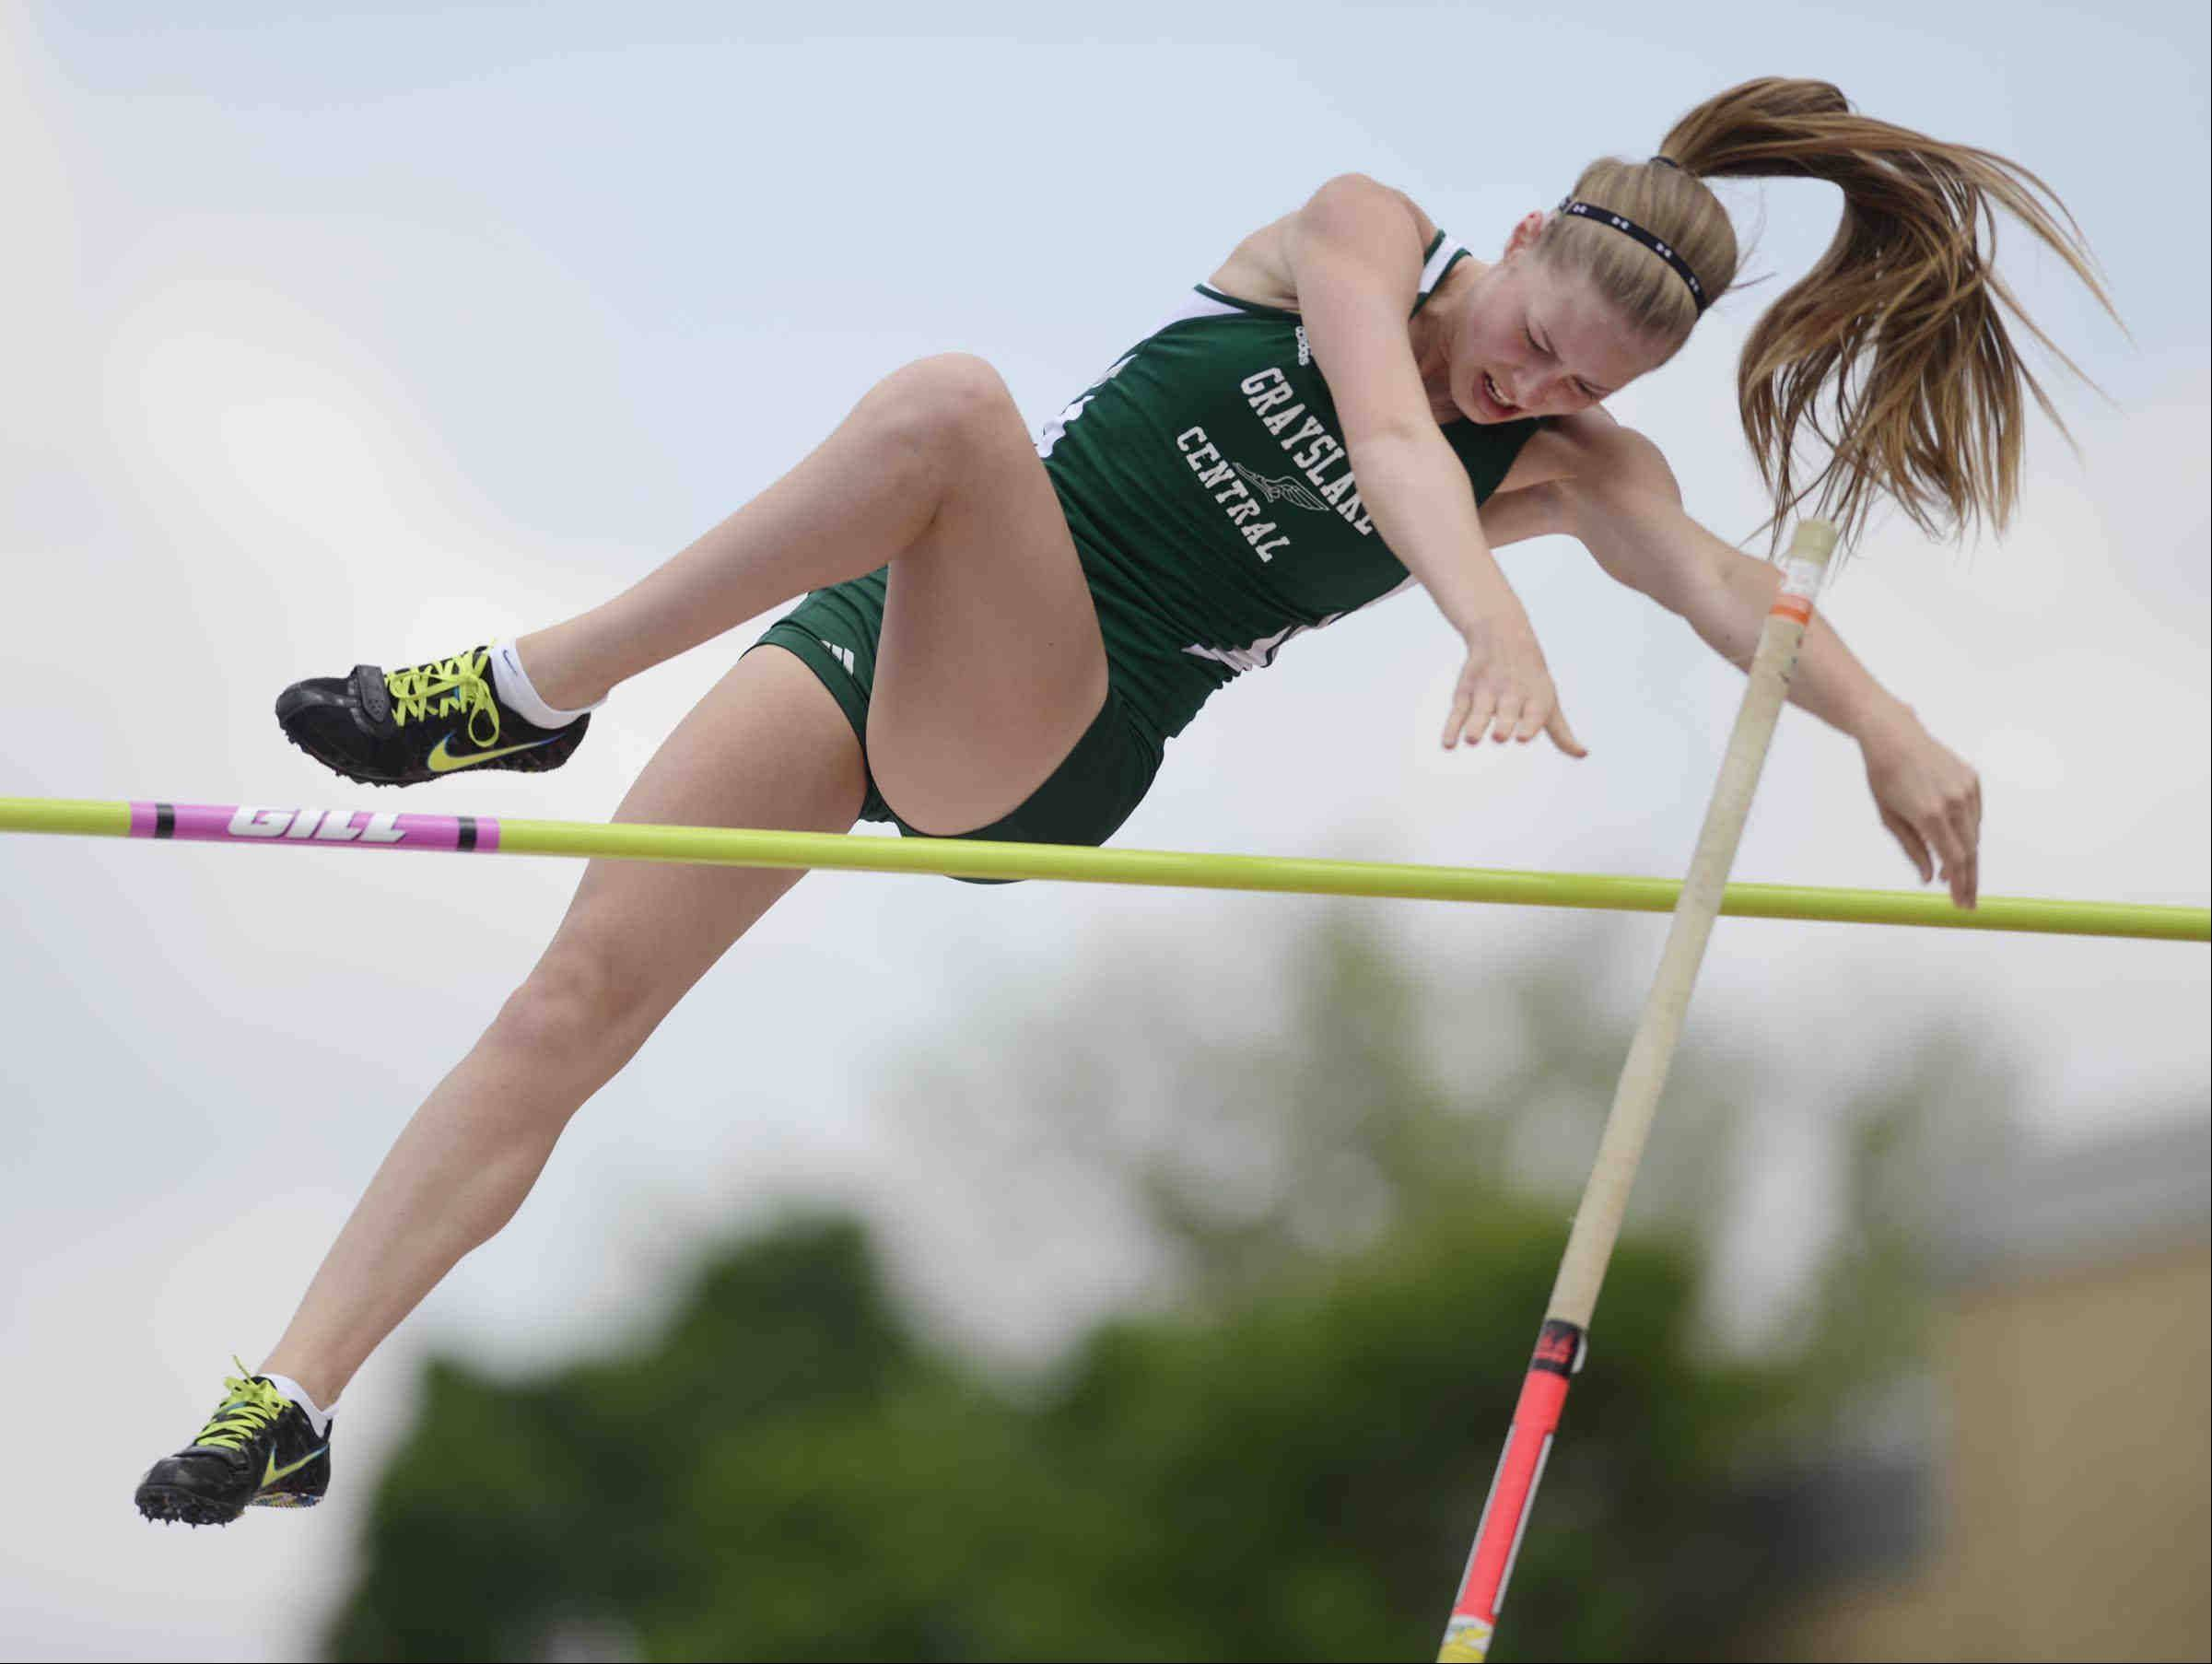 Grayslake Central�s Cara Engel placed eighth Saturday in the pole vault at the Class 2A girls state track and field finals in Charleston.